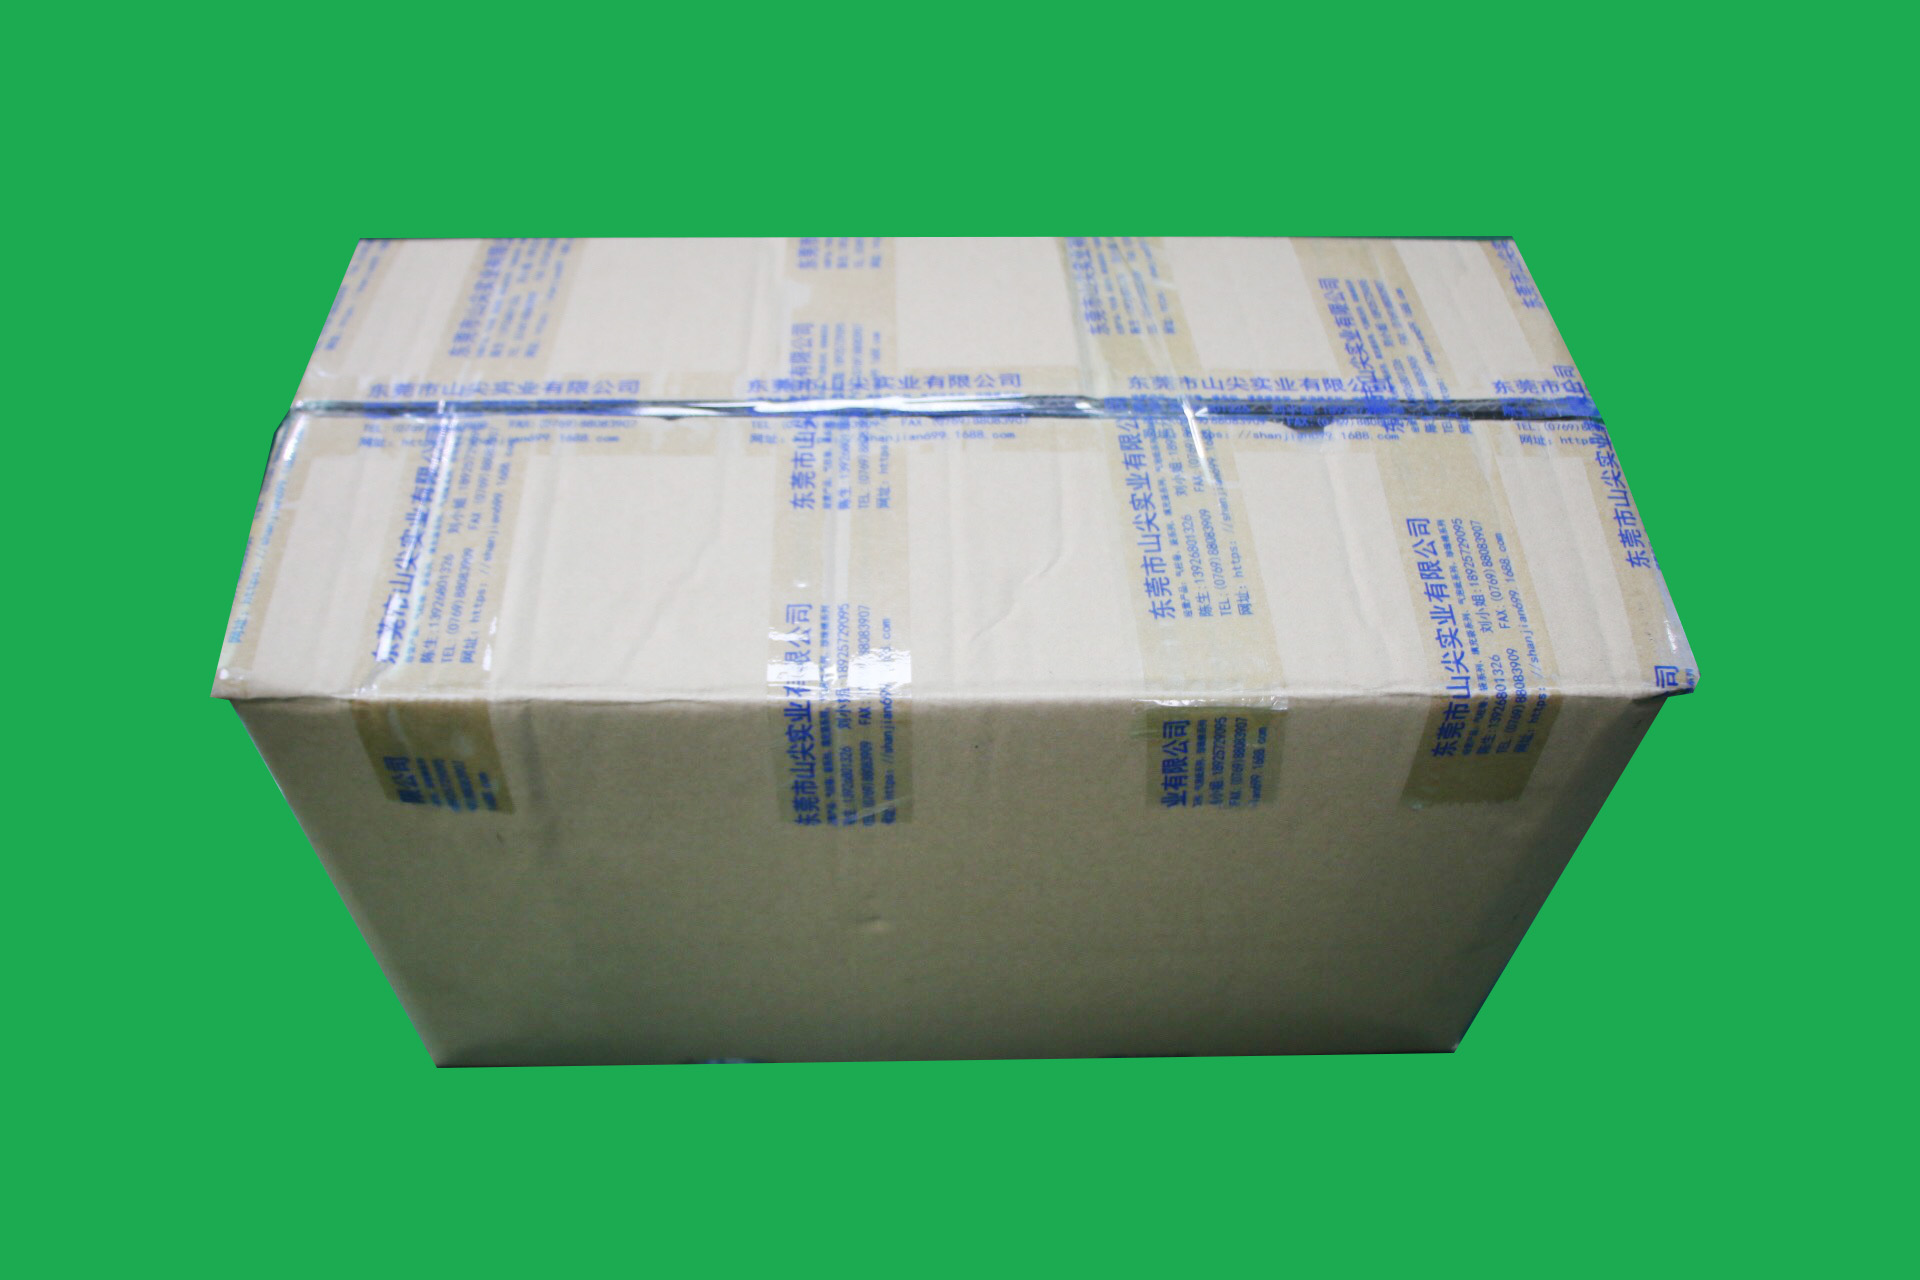 Sunshinepack High-quality airpack india factory for delivery-6